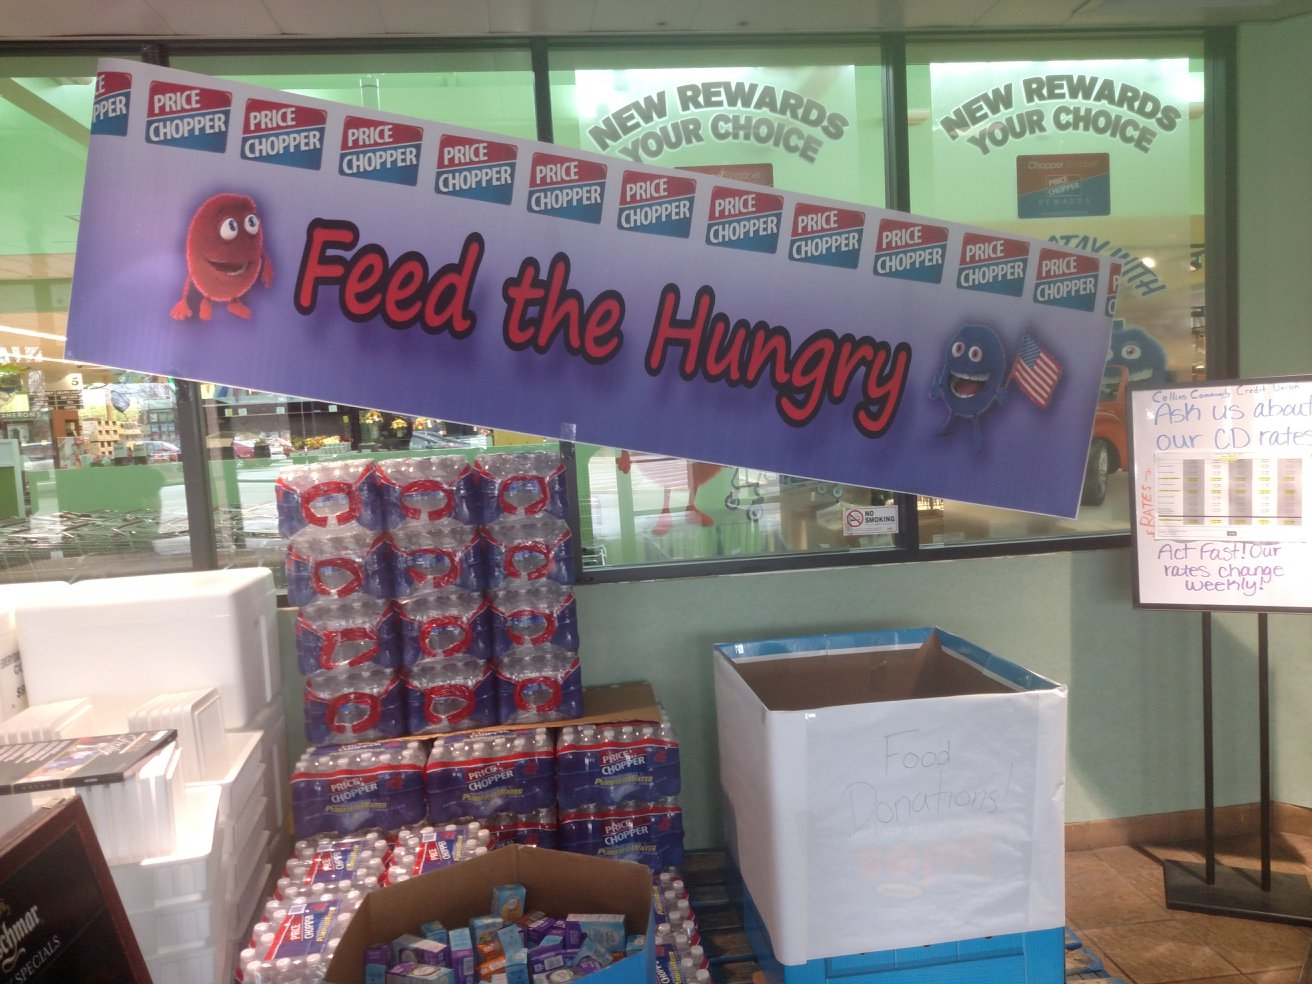 Price Chopper - Feed The Hungry